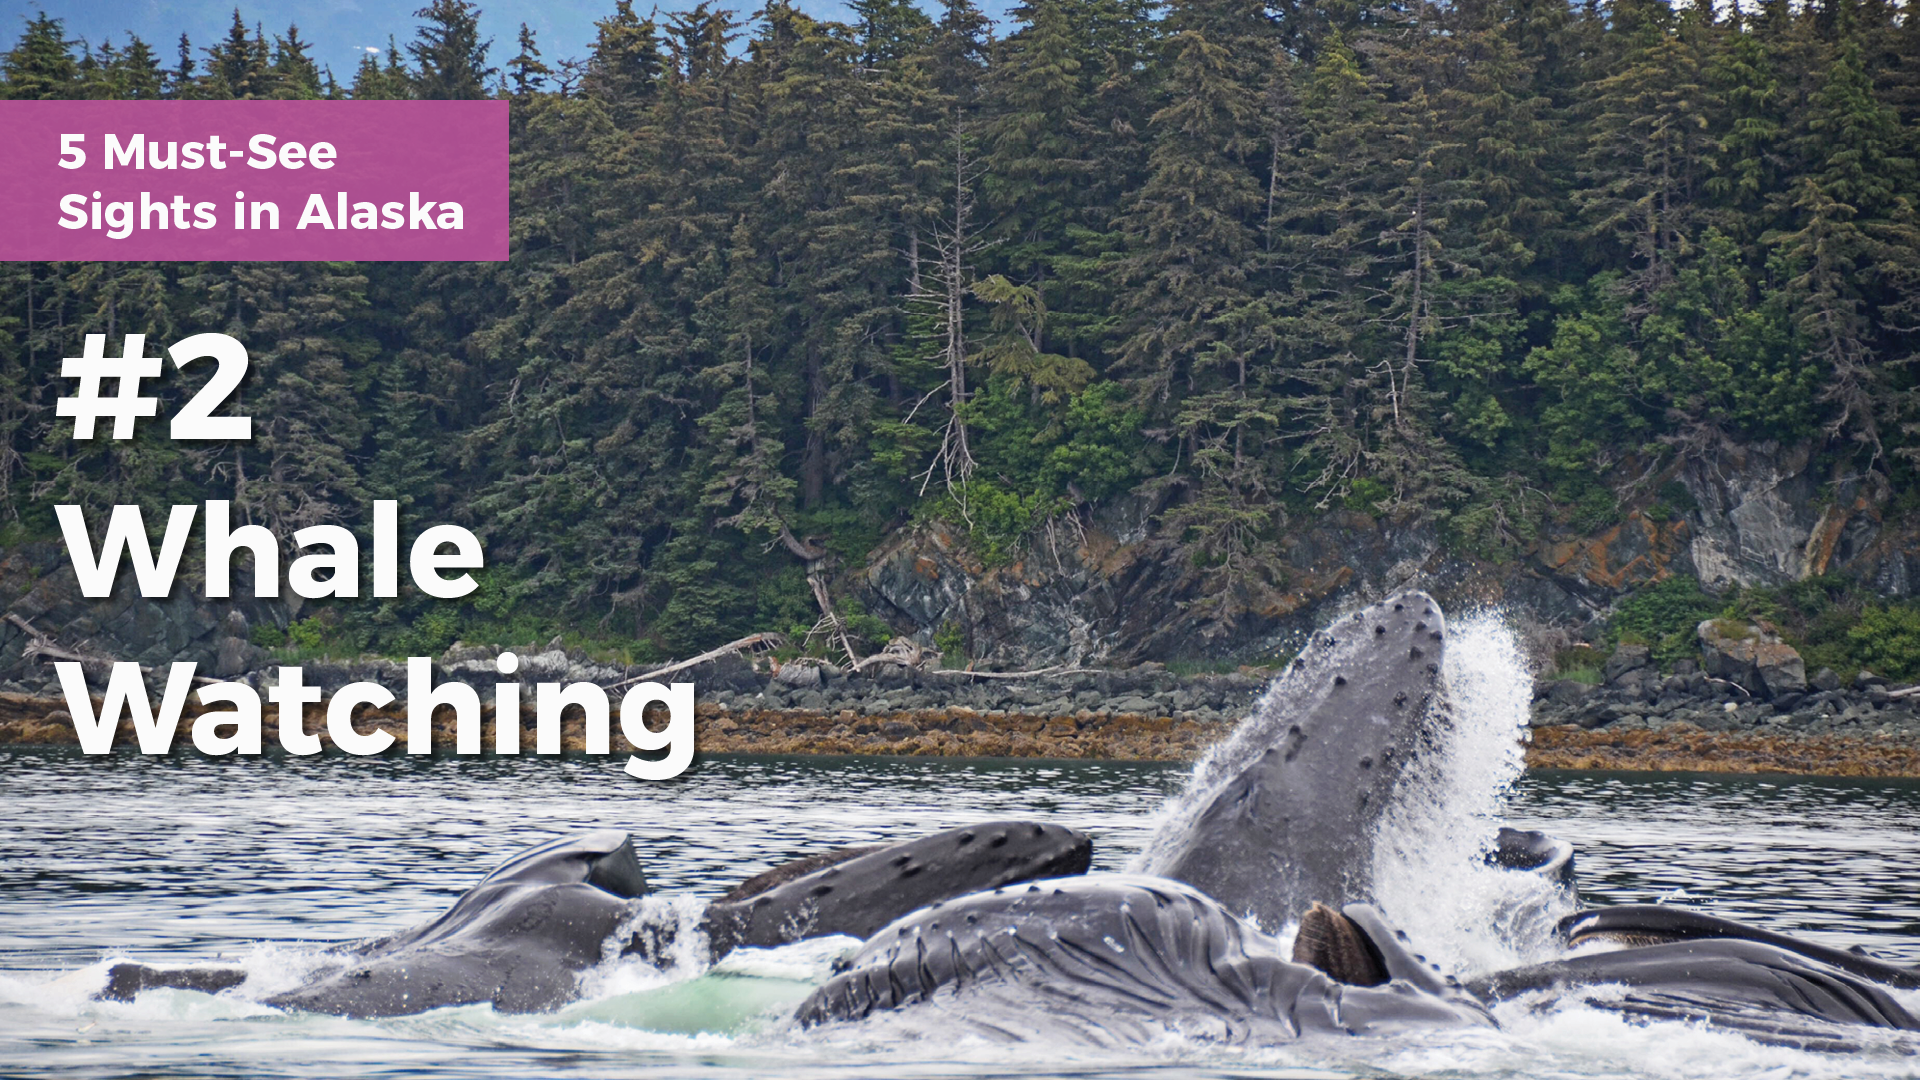 5-must-see-sights-in-alaska-whale-watching